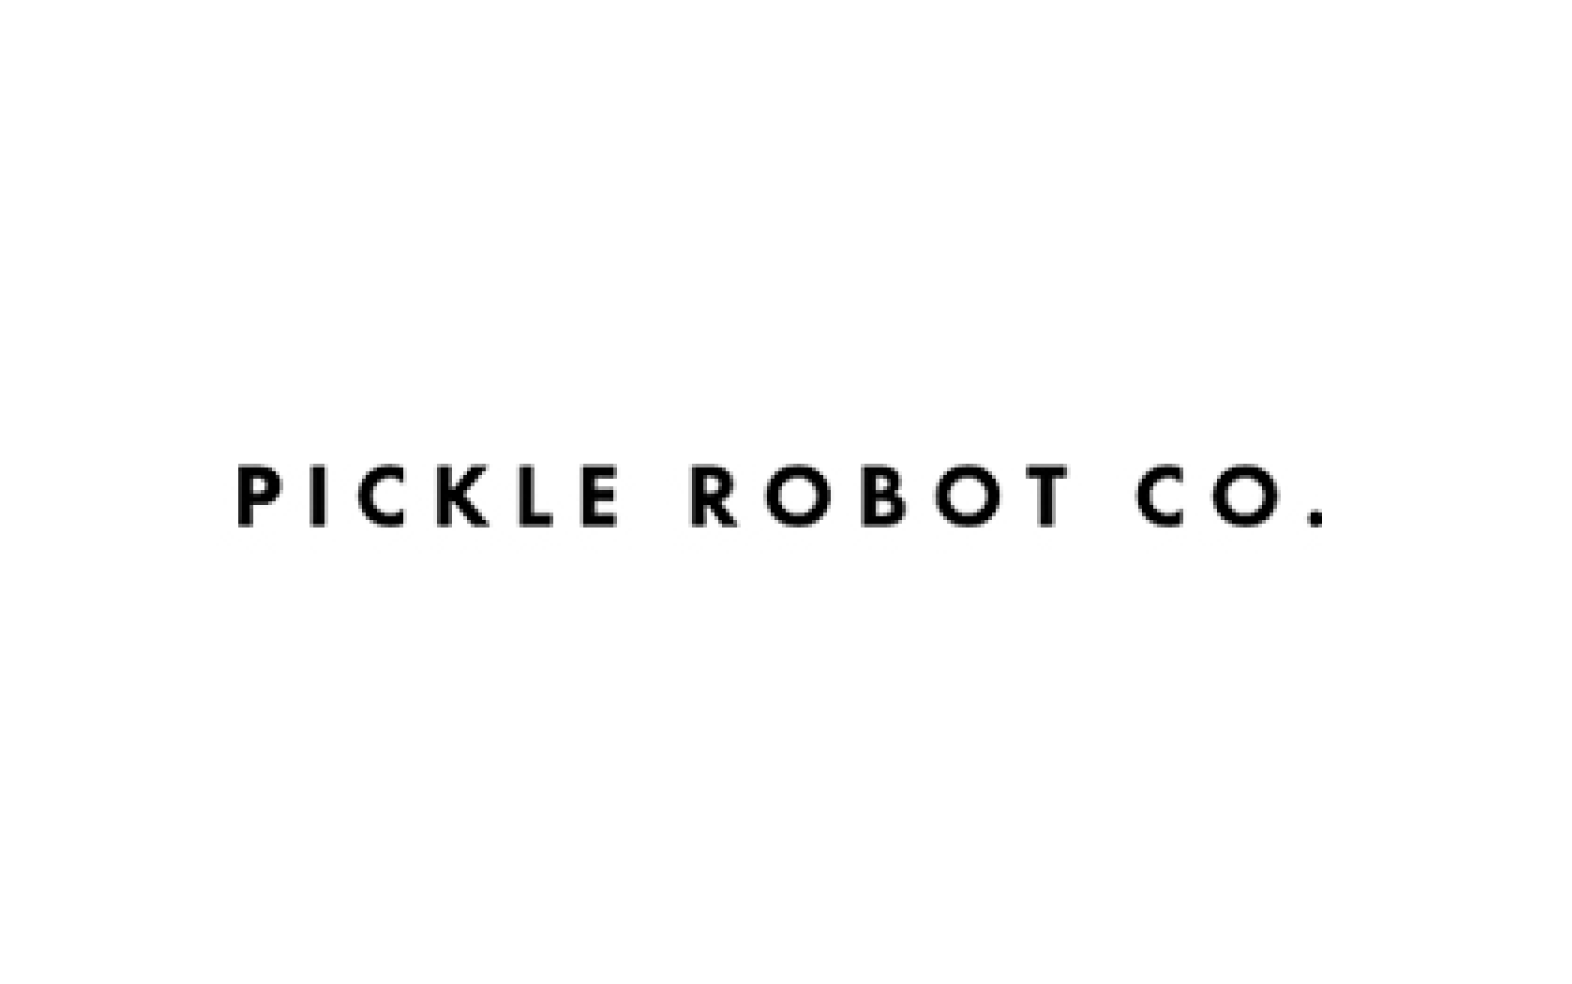 Pickle Robot Co.